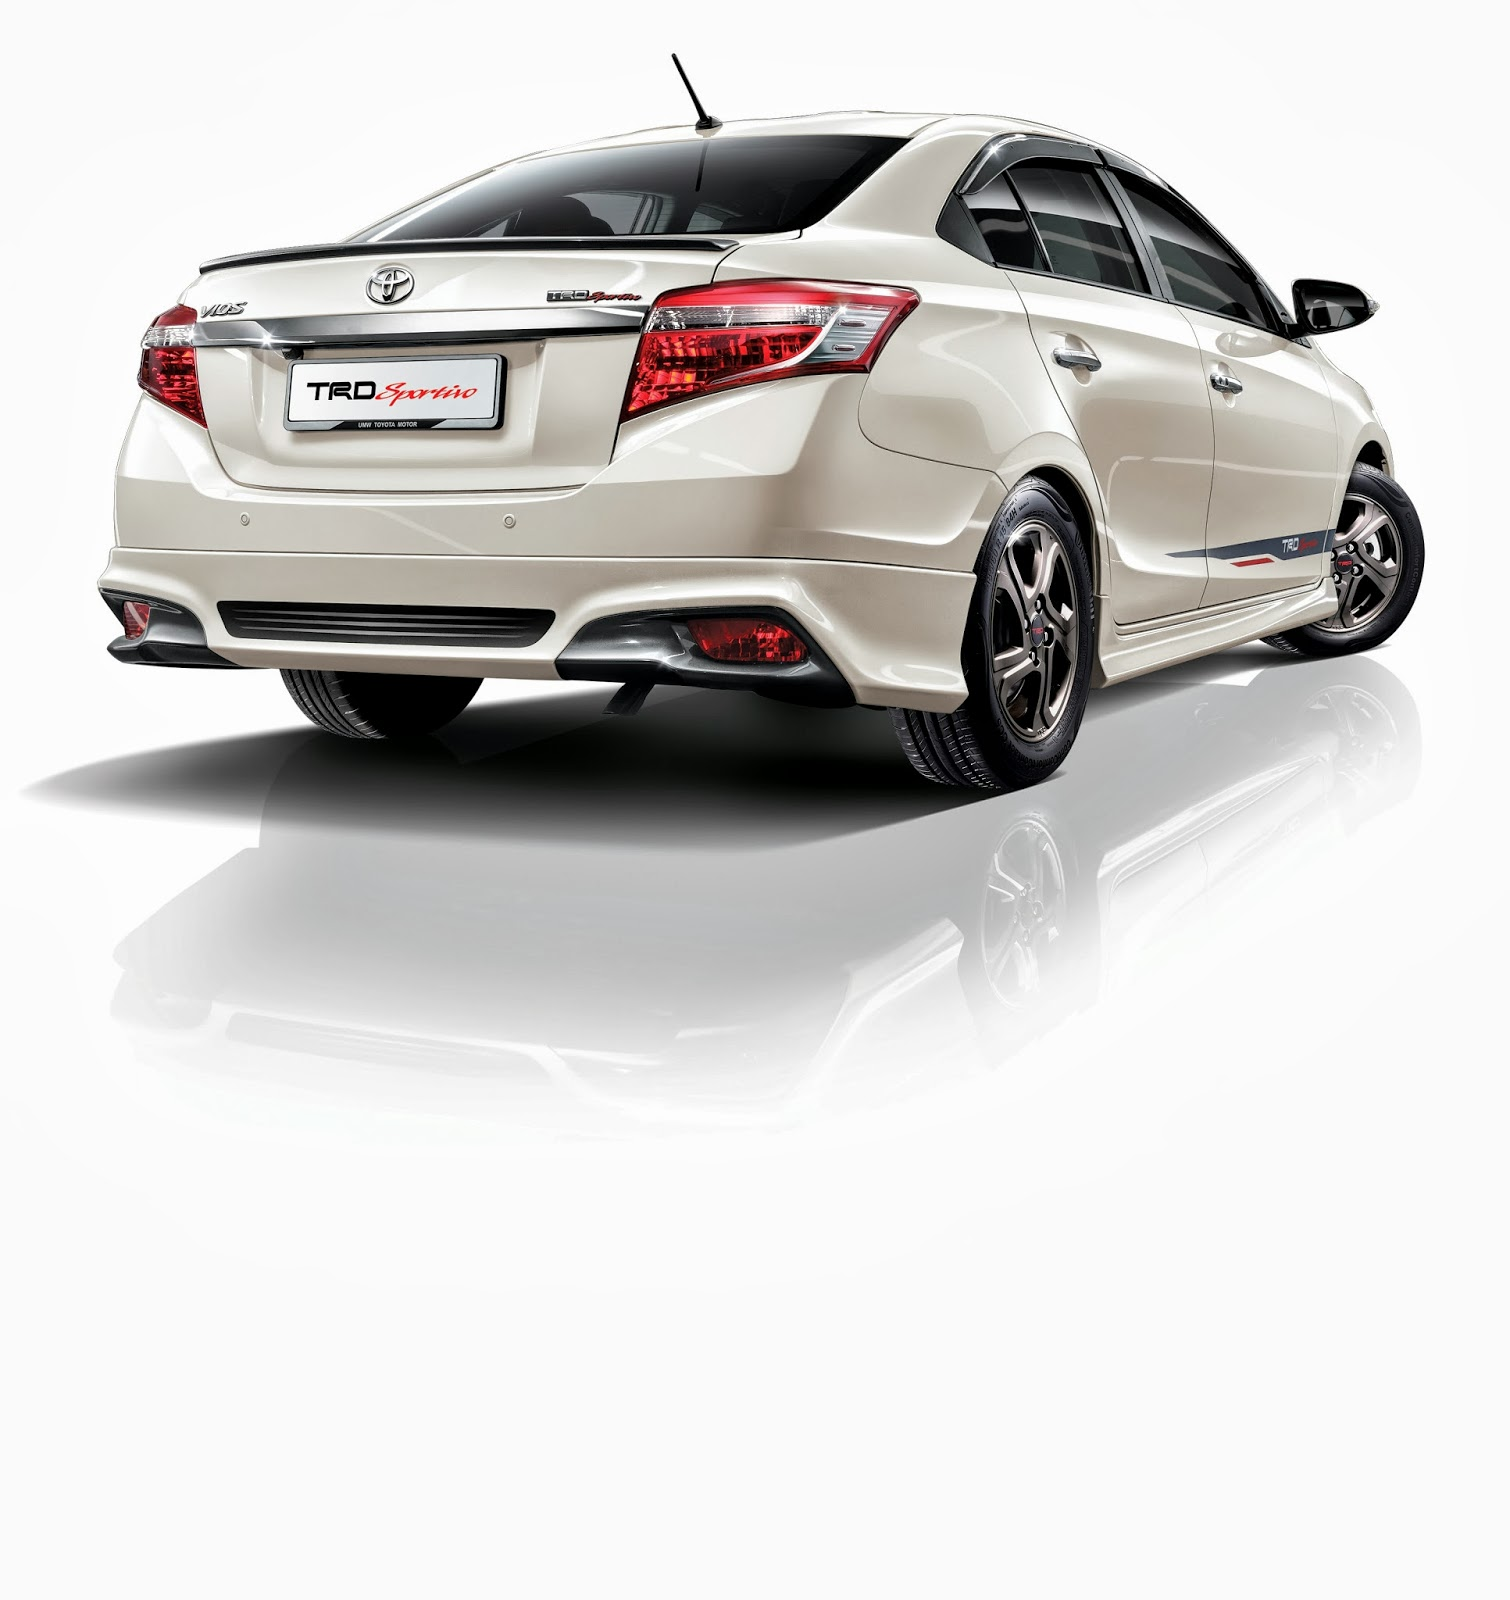 The all new toyota vios includes improved styling advanced automotive technologies and upgraded features for all variants providing customers even greater